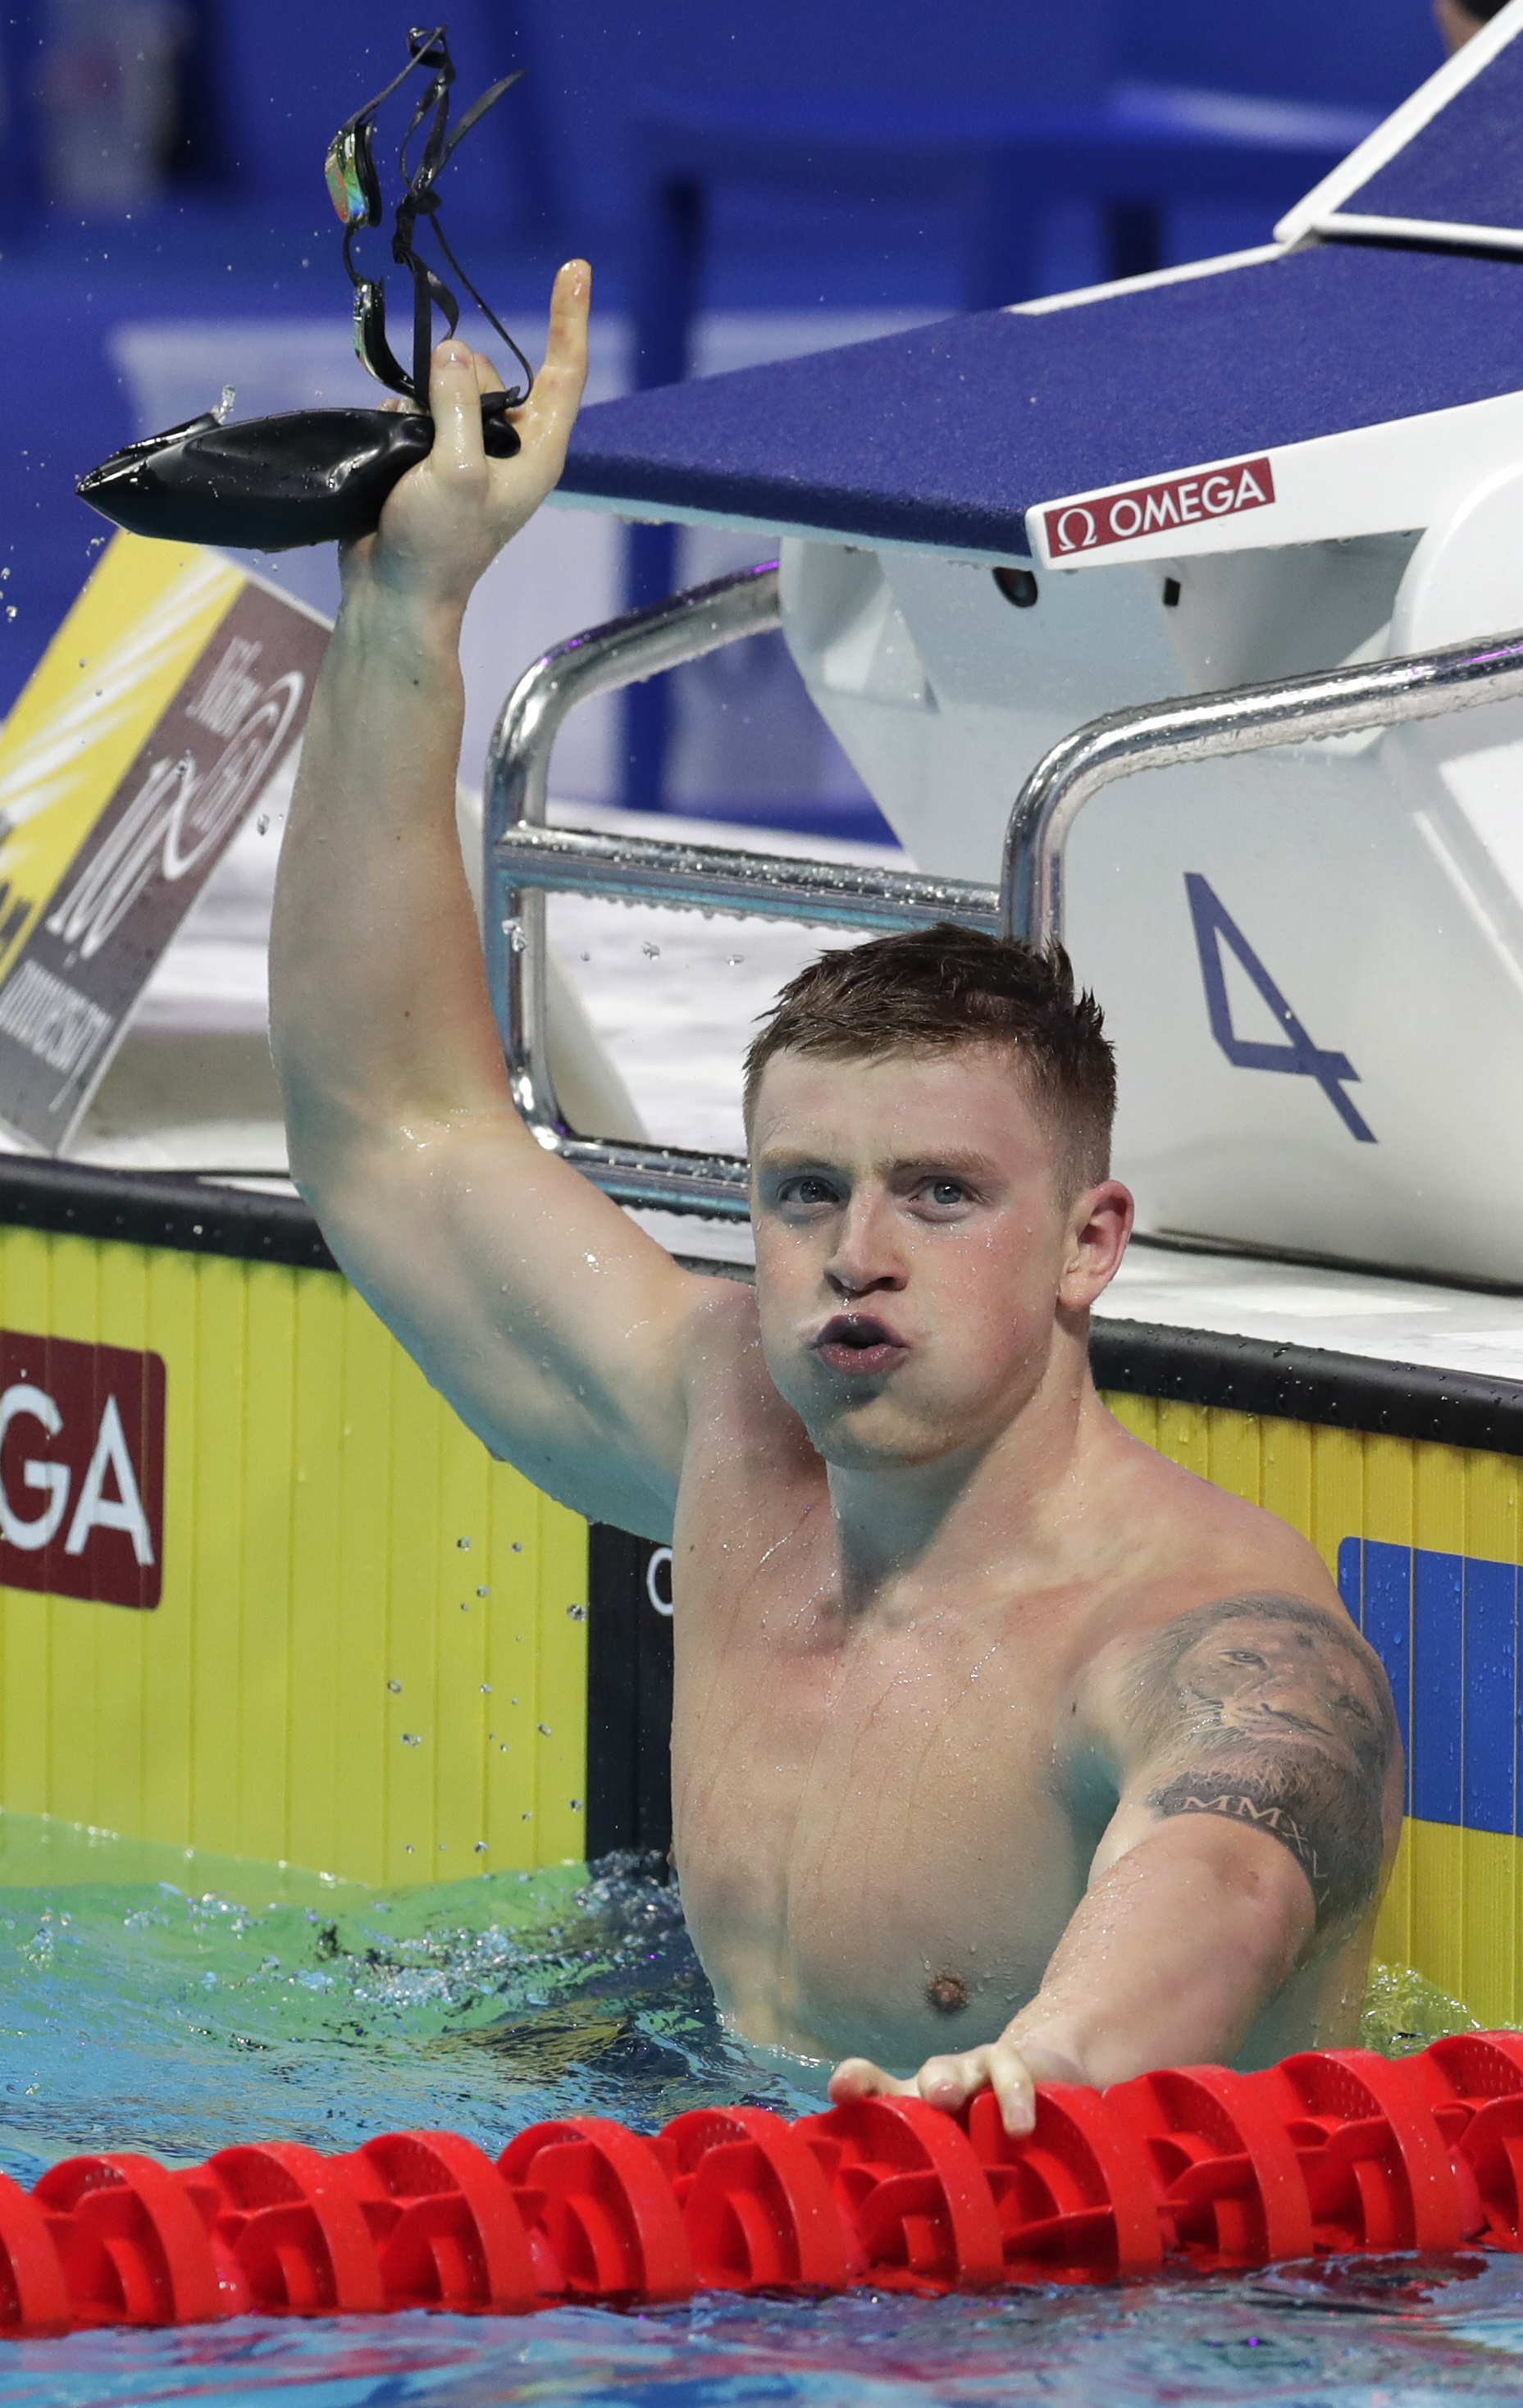 Britain's Adam Peaty celebrates after winning the gold medal in the men's 100-meter breaststroke final during the swimming competitions of the World Aquatics Championships in Budapest, Hungary, Monday, July 24, 2017. (AP Photo/Michael Sohn)